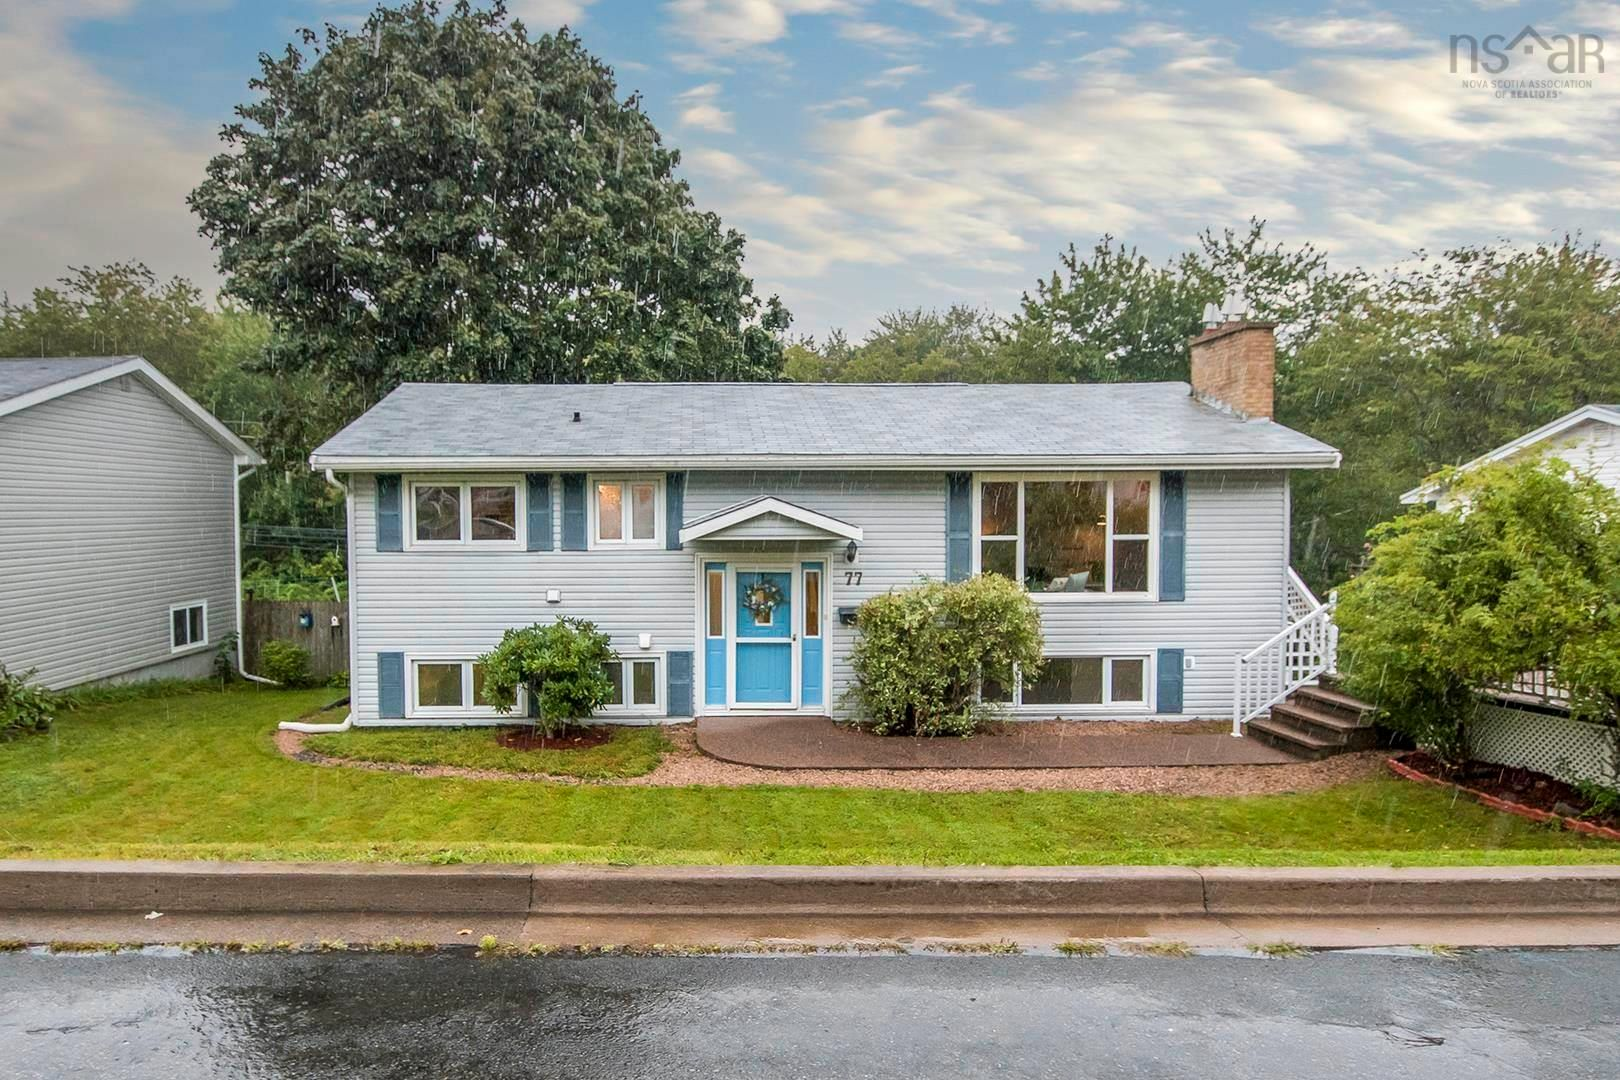 Main Photo: 77 Dickey Drive in Lower Sackville: 25-Sackville Residential for sale (Halifax-Dartmouth)  : MLS®# 202123527